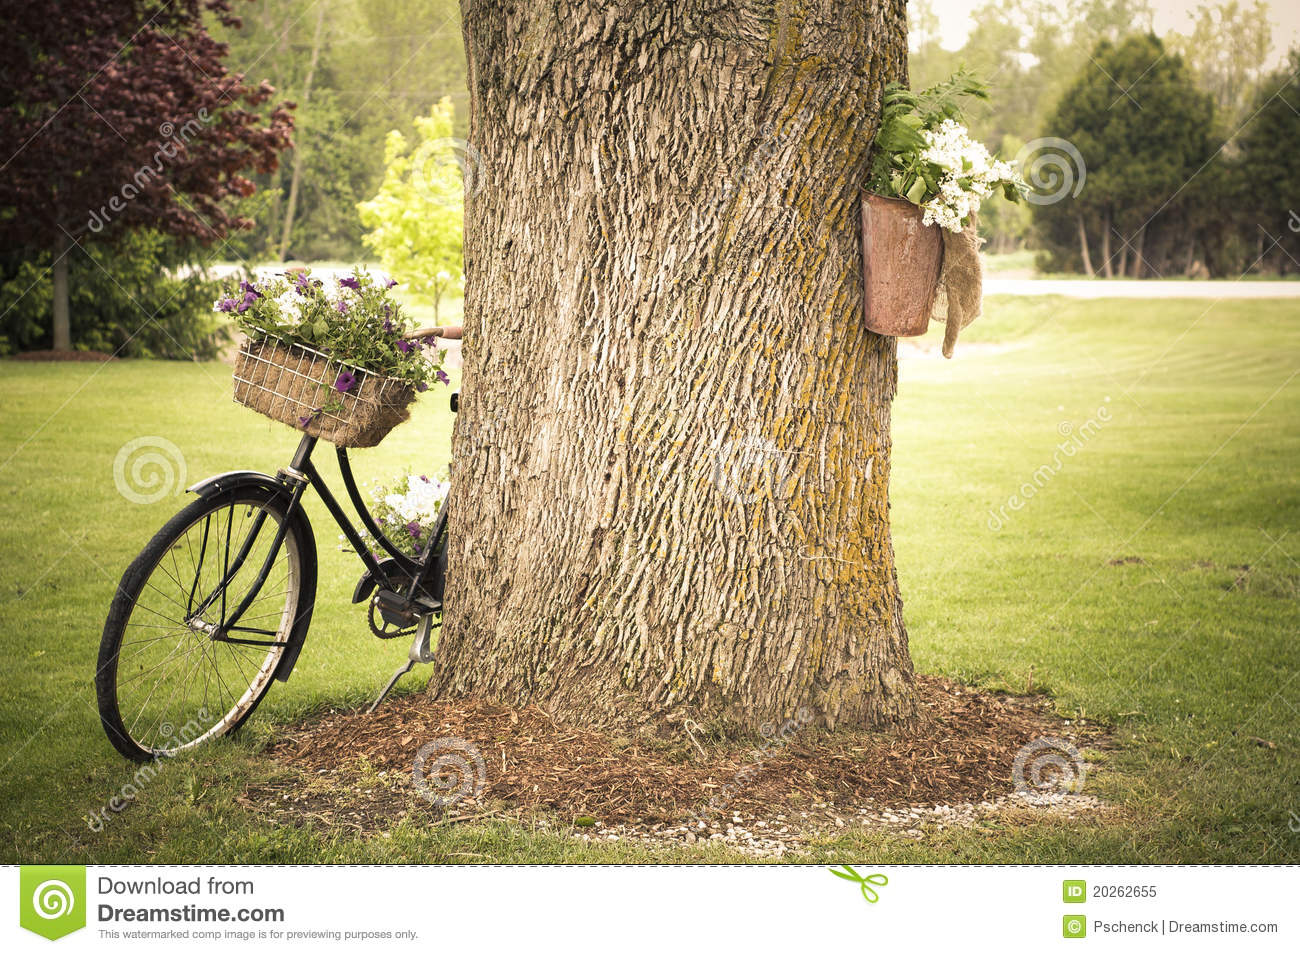 altes fahrrad mit den blumen die am baum sich lehnen lizenzfreies stockfoto bild 20262655. Black Bedroom Furniture Sets. Home Design Ideas